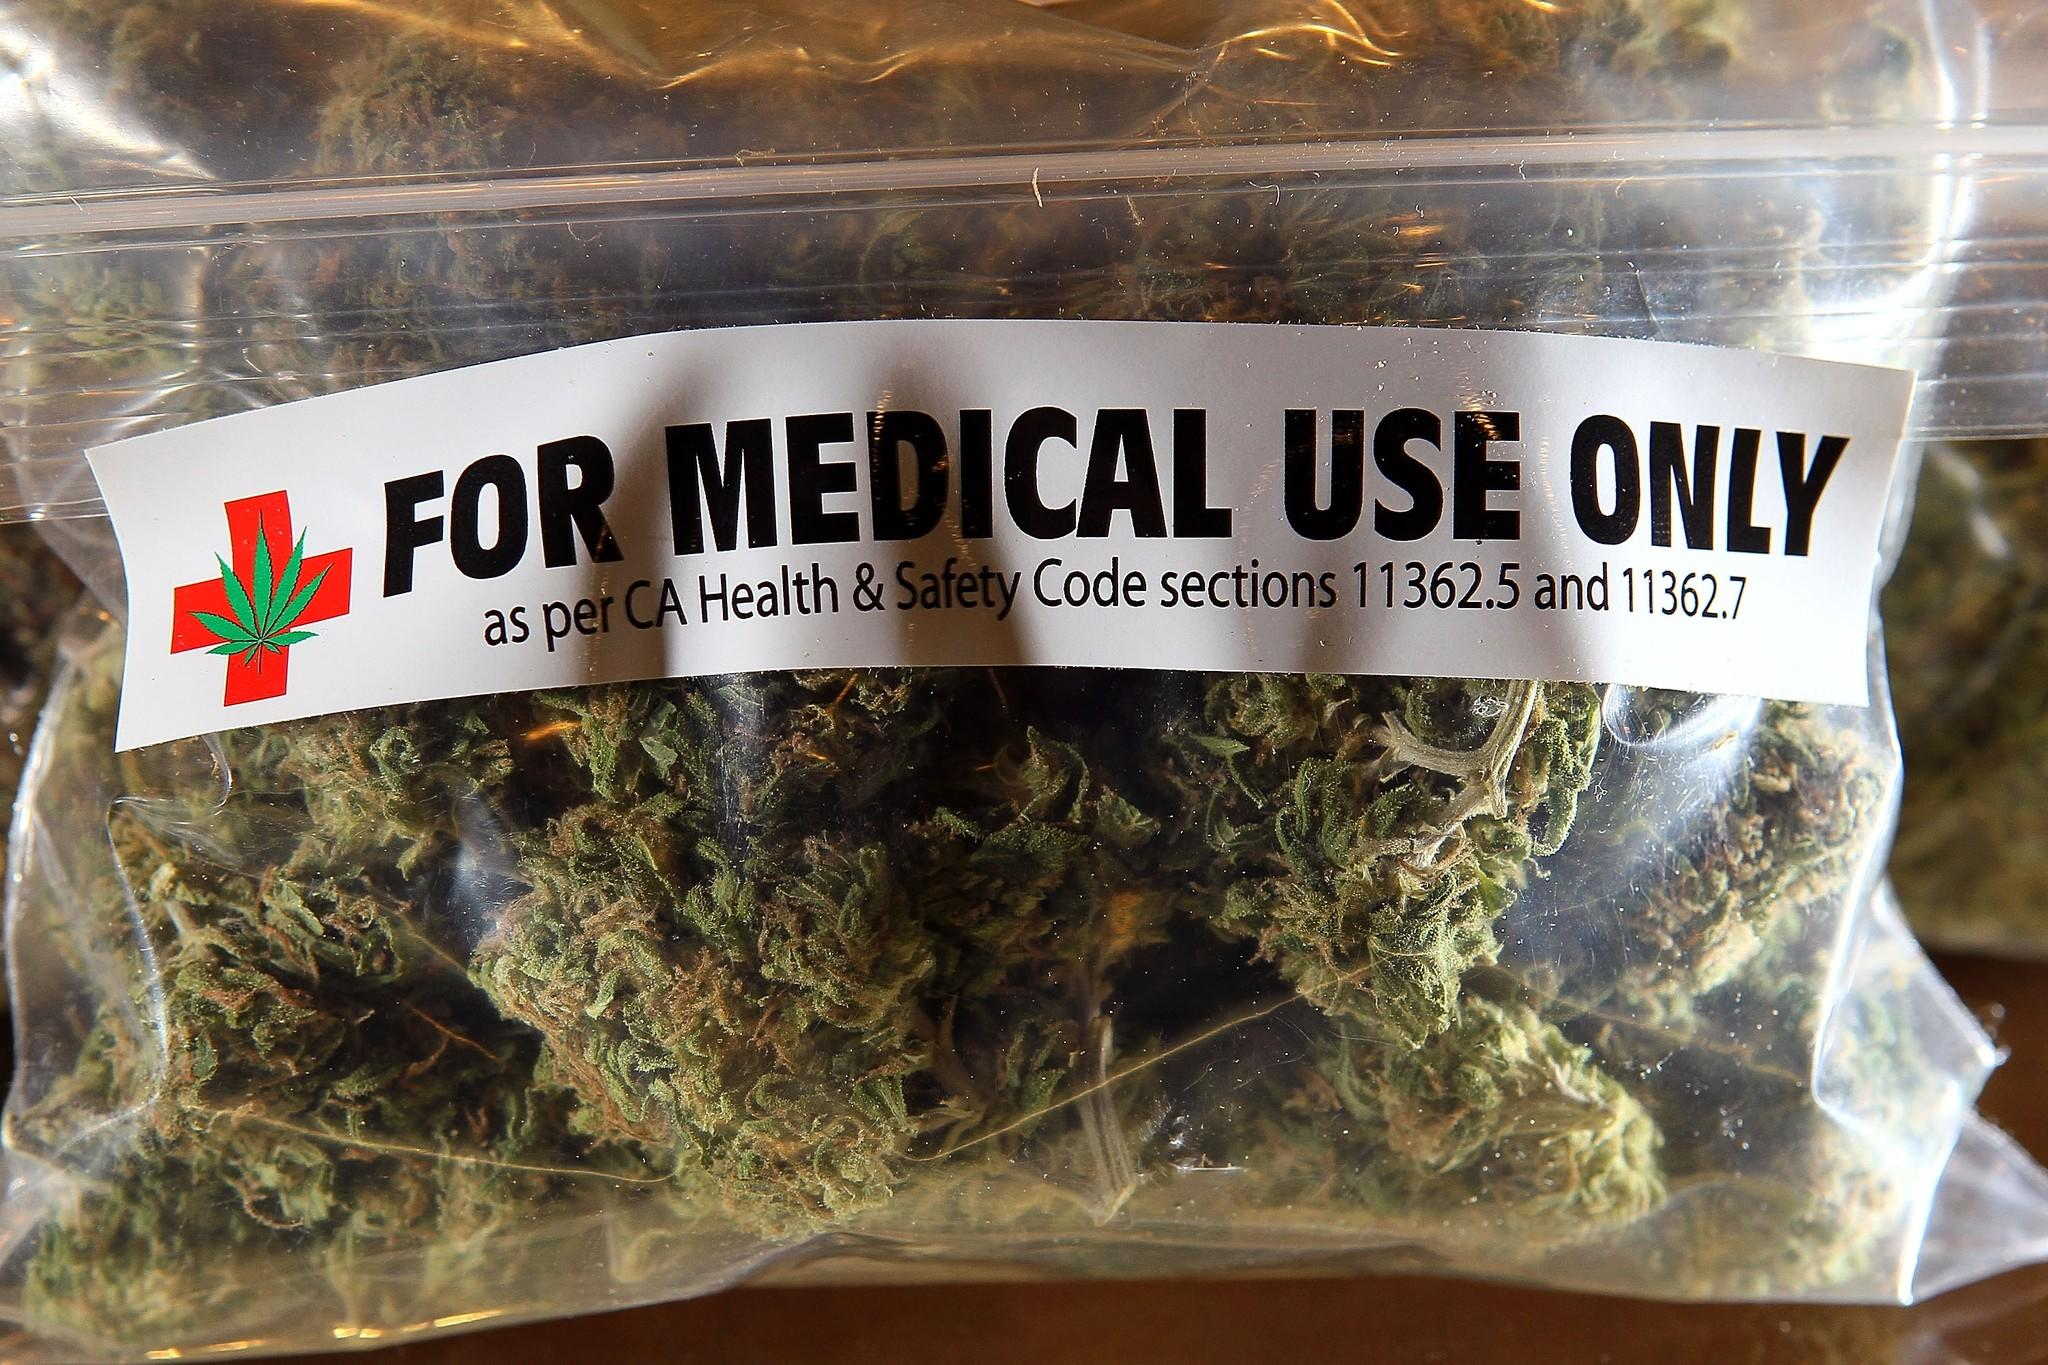 A one-ounce bag of medicinal marijuana.